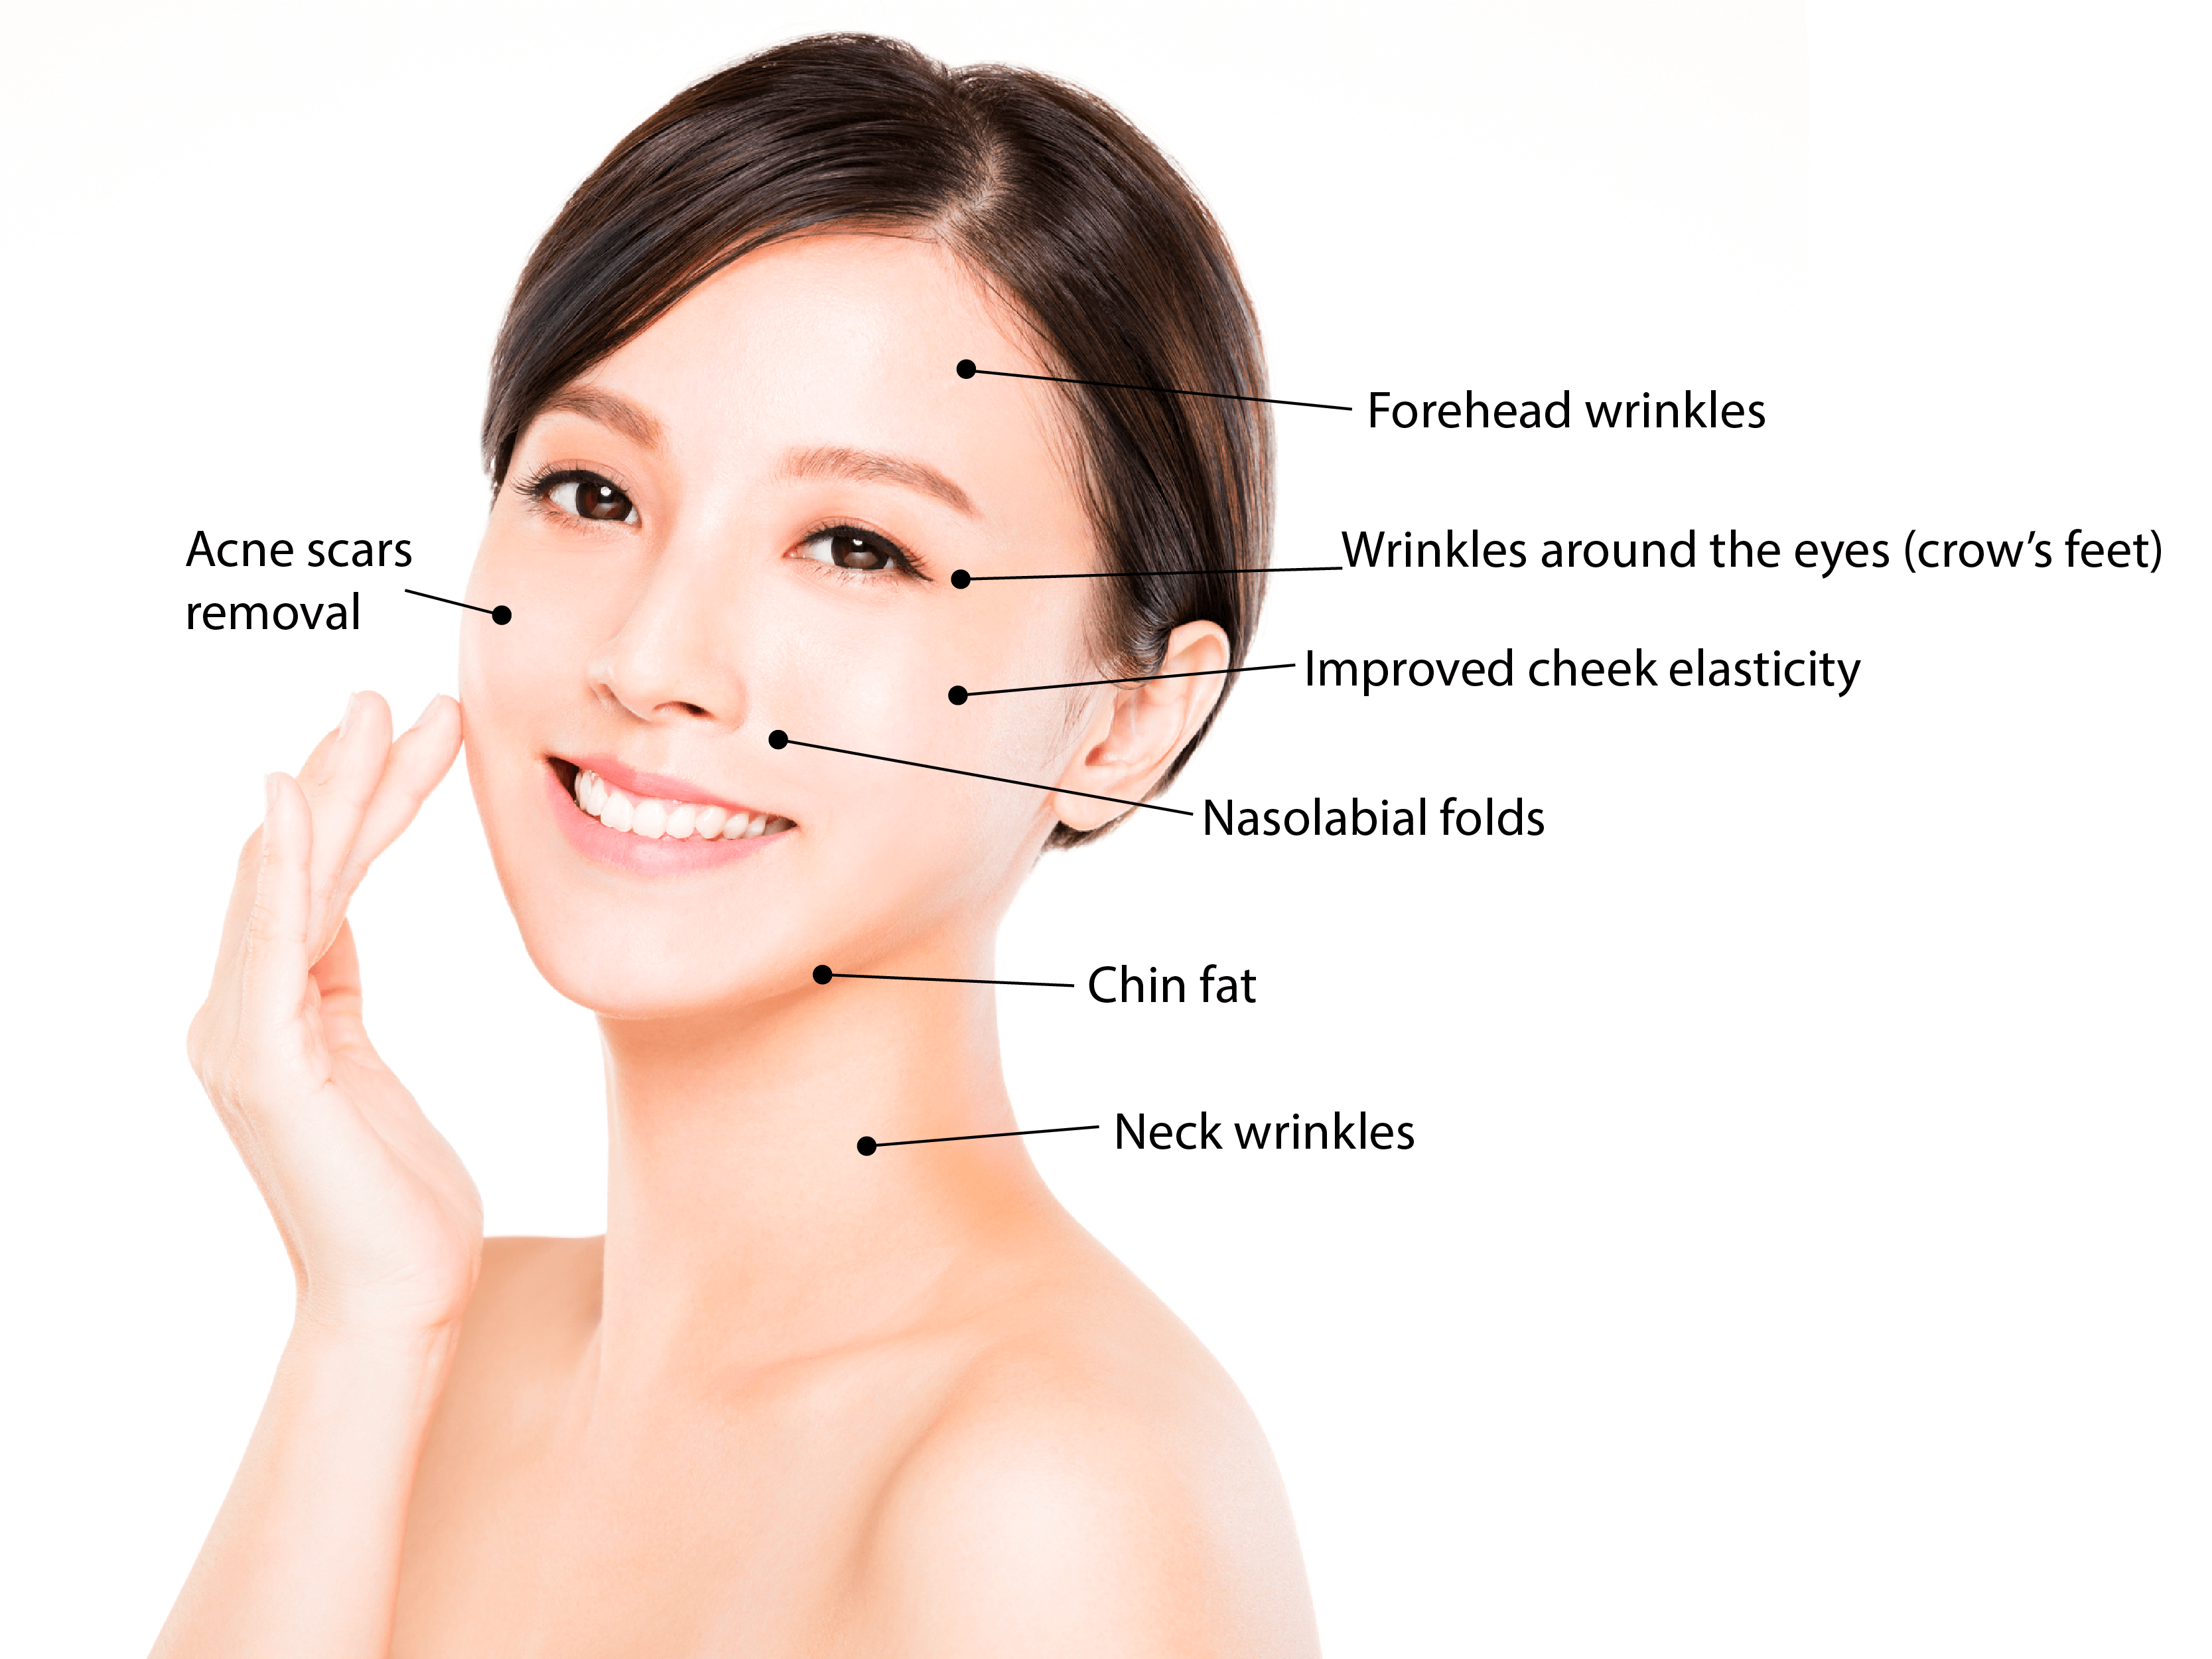 AirJet Acne Scar Facelift Shiro Aesthetic Clinic